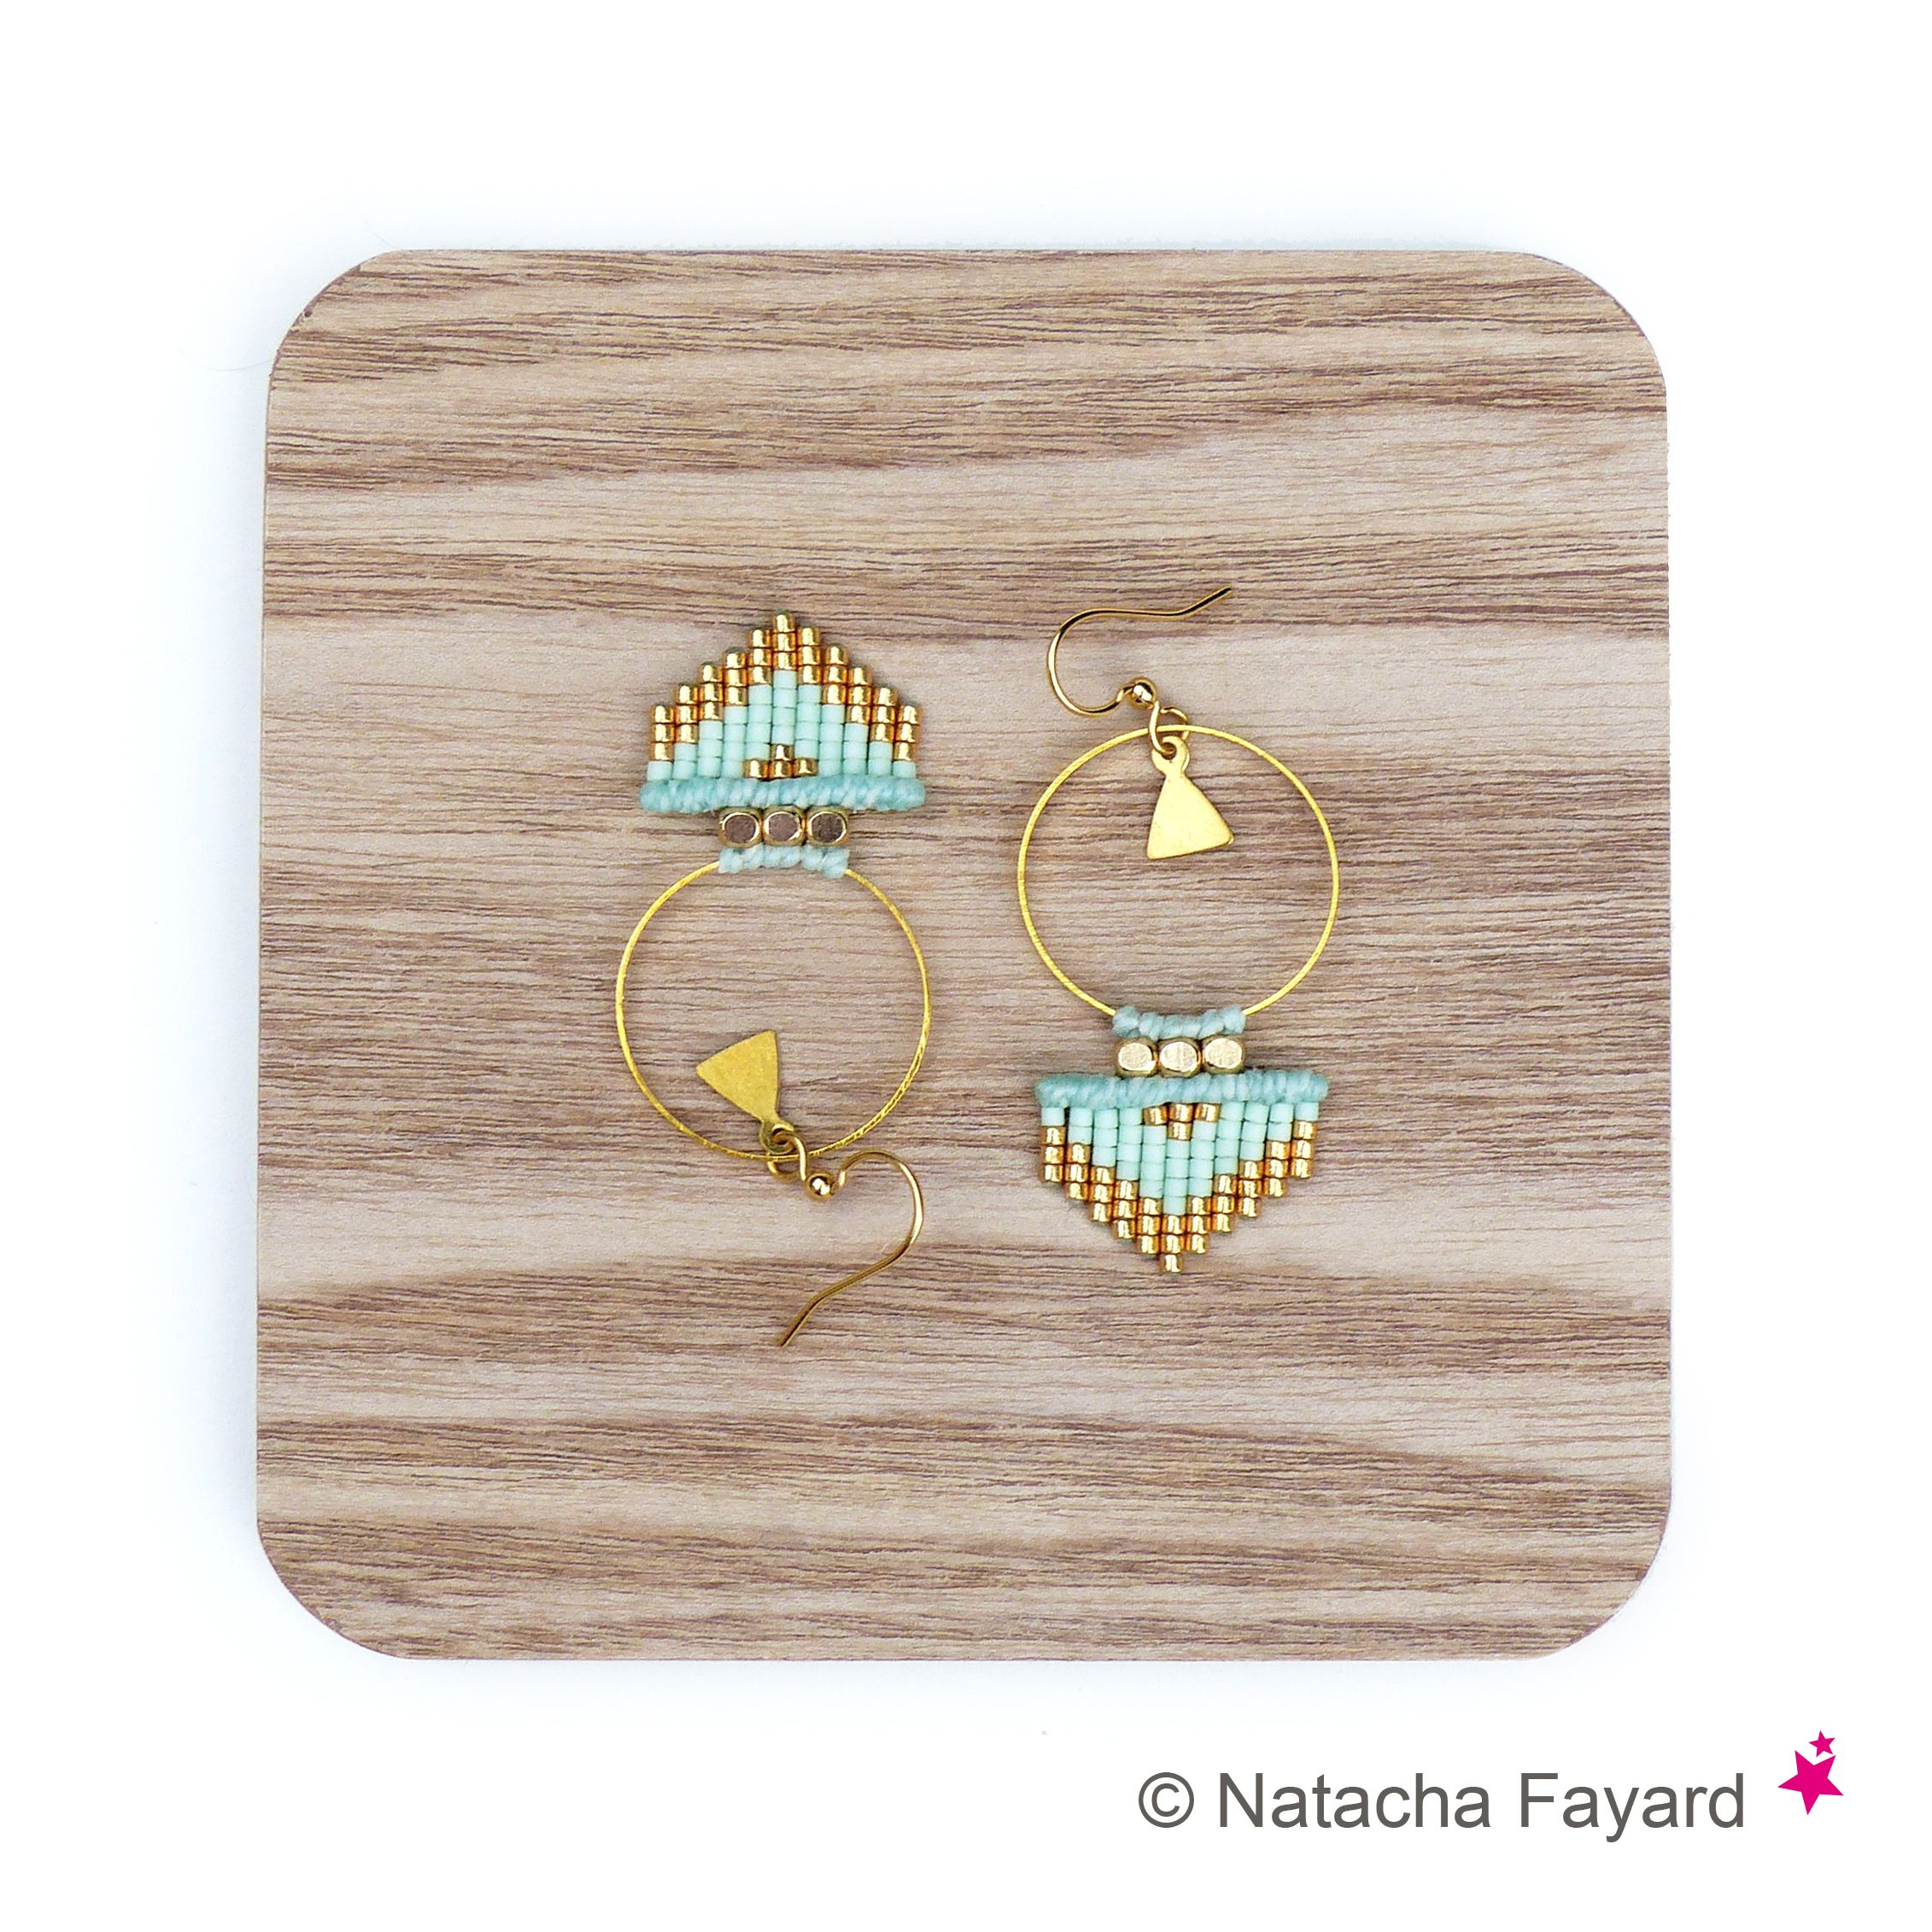 Pastel mint green & gold ethnic chic woven earrings, hoops shape, arrow head / triangle pattern, made with micro macrame and miyuki delica seed beads. © Natacha Fayard #miyuki #delica #SeedBeads #earrings #hoops #mint #pastel #green #gold #arrow #triangle #ArrowHead #ethnic #chic #style #woven